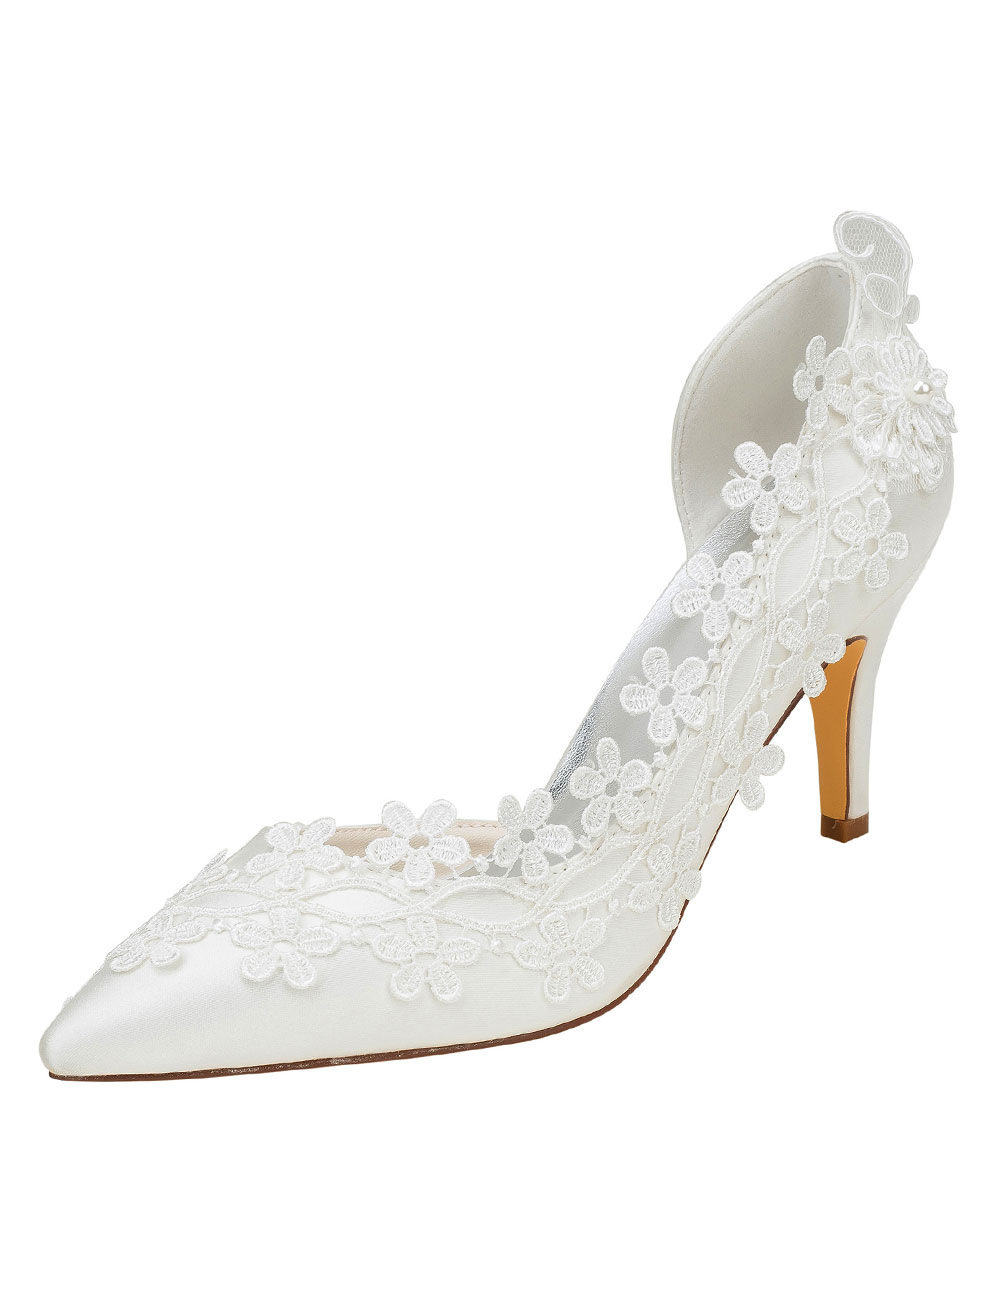 Ivory Wedding Shoes High Heel Pointed Toe Flowers Beaded Bridal Pumps